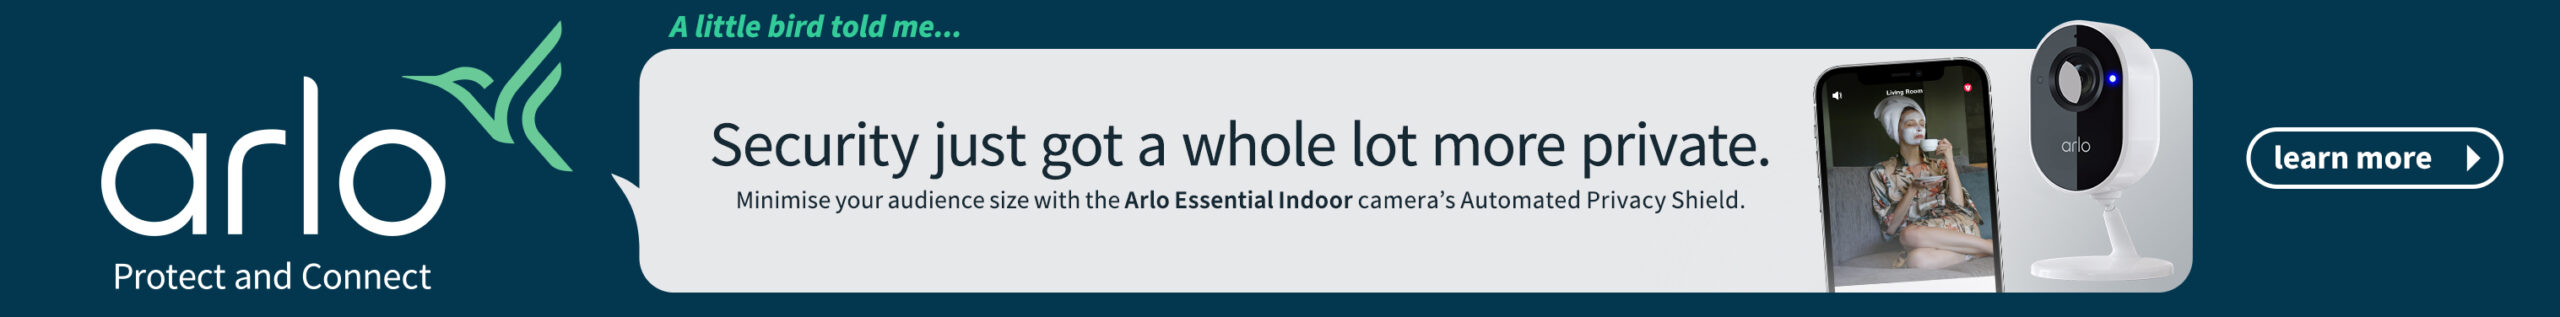 ARL0355 Arlo ESS Indoor Generic Banner 728x90 V4 scaled Games On Net Relaunched By Internode